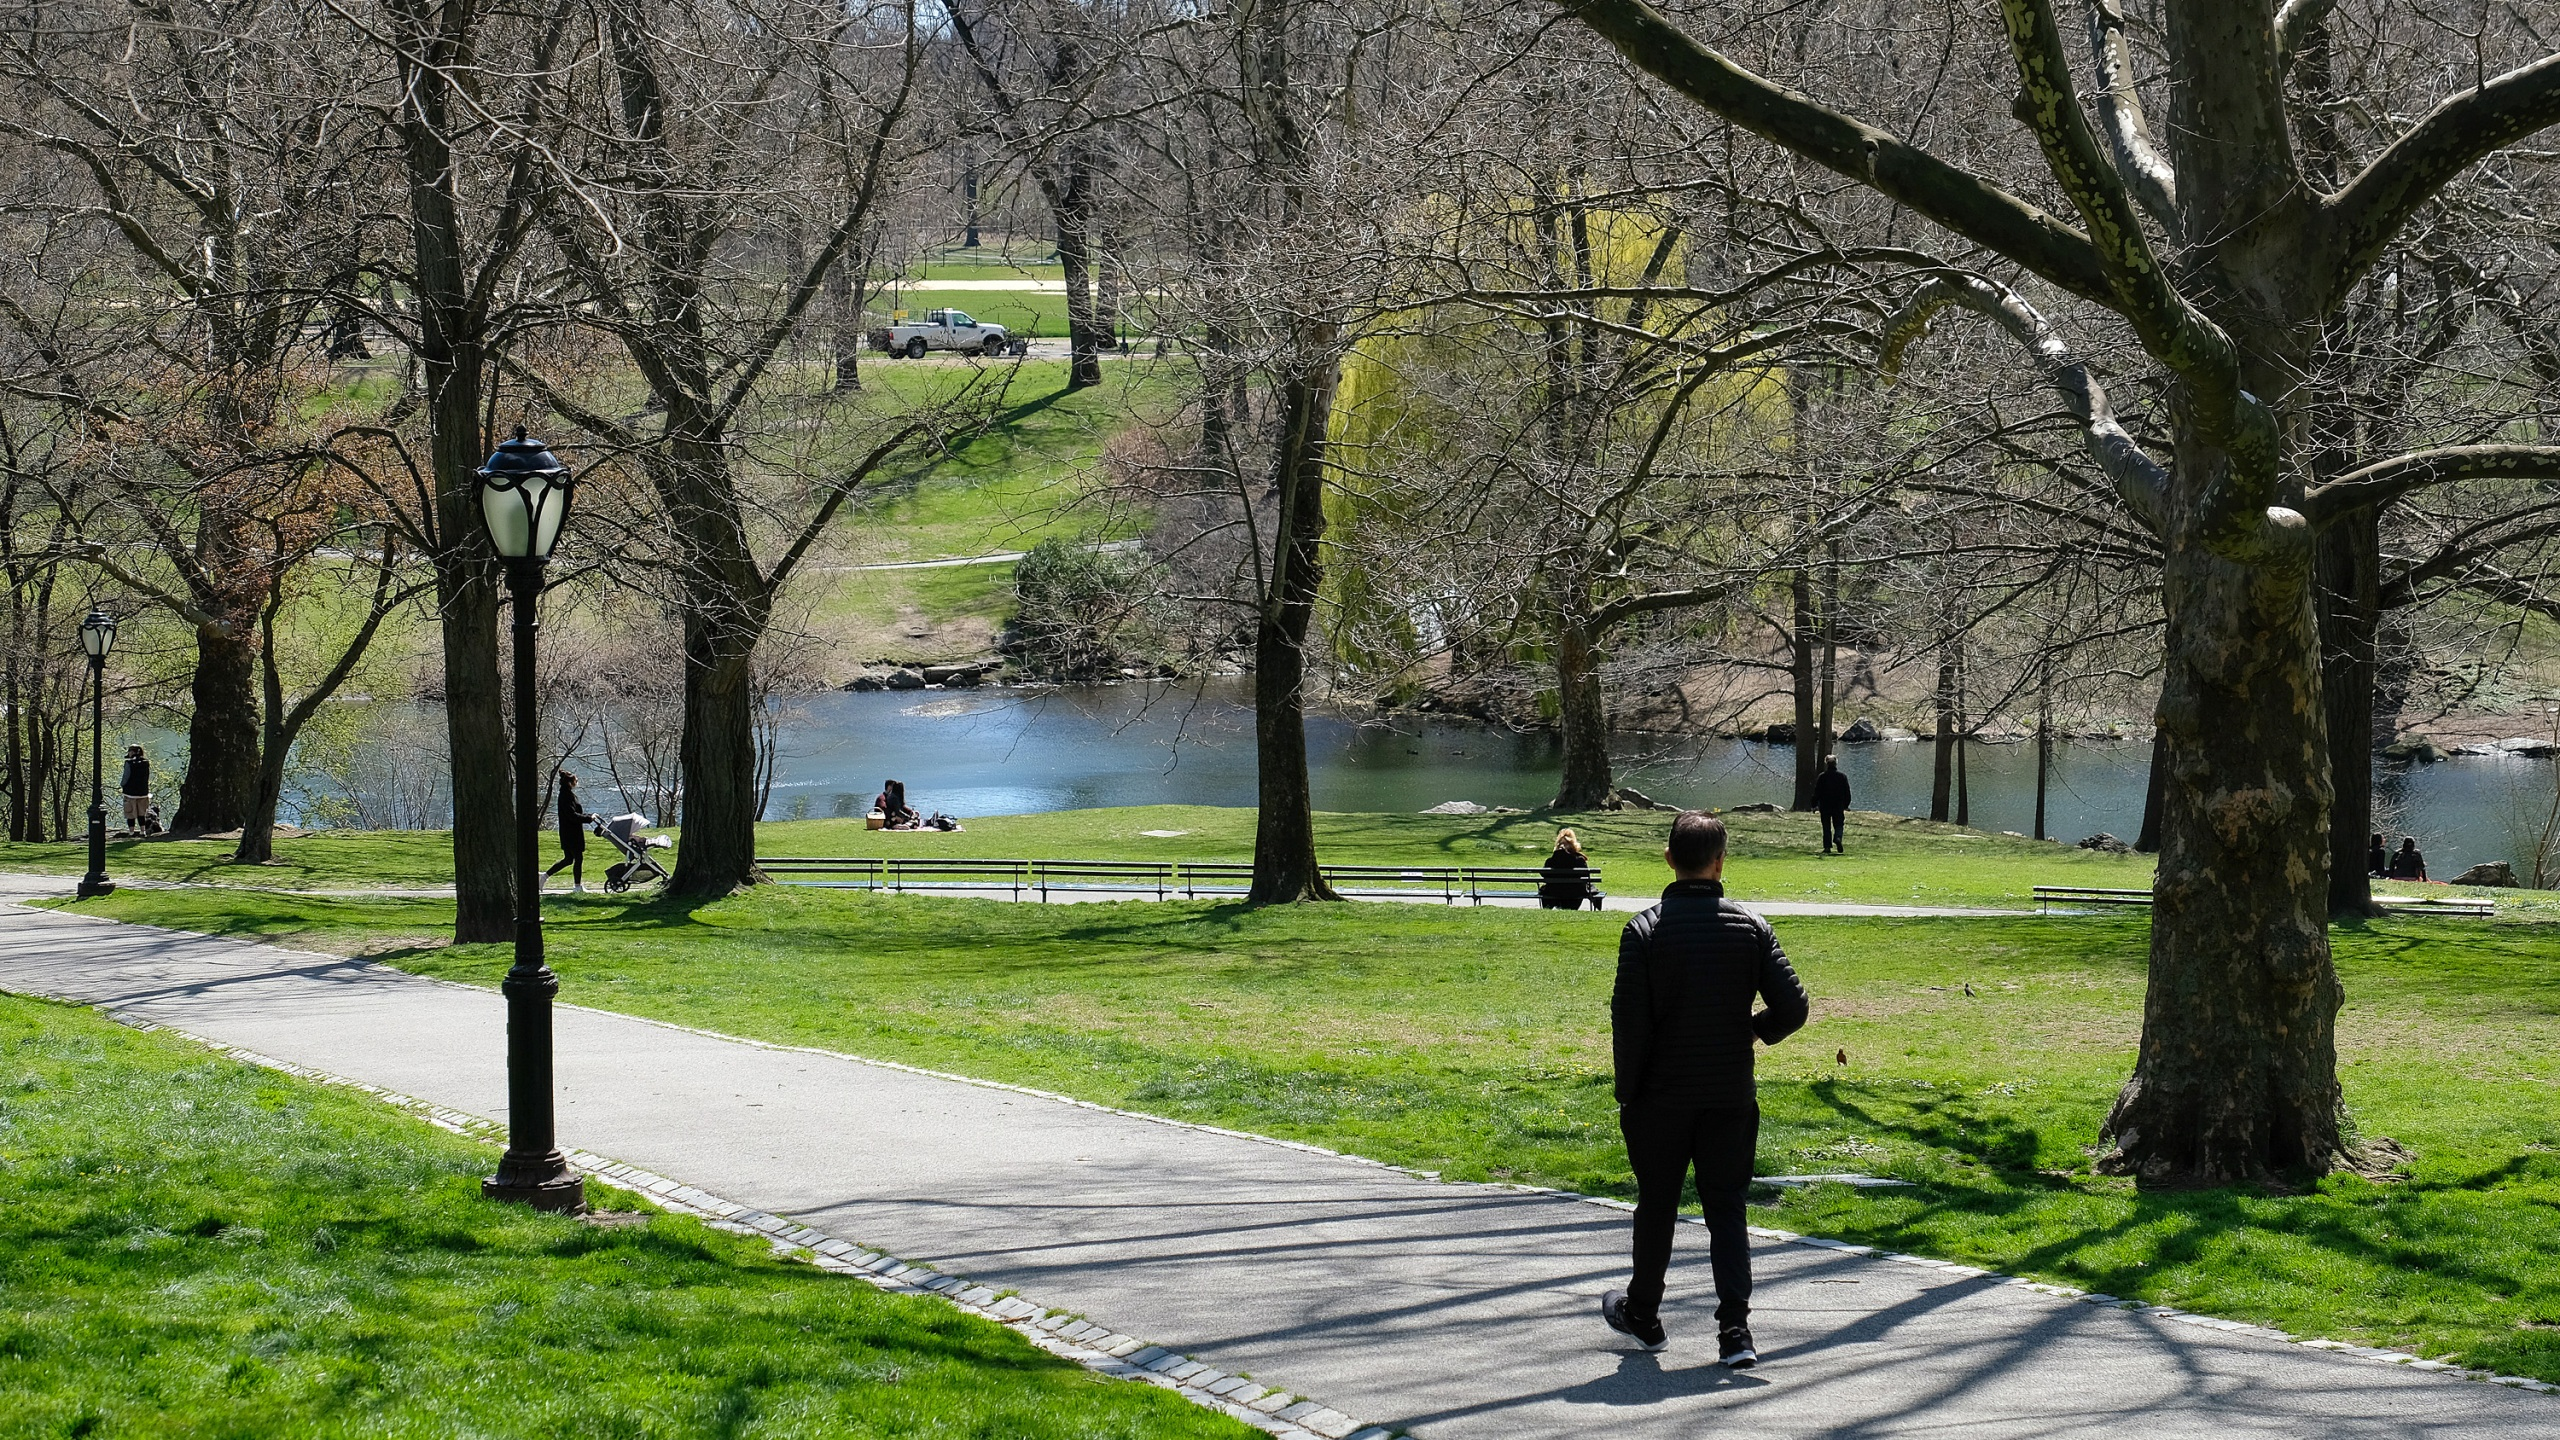 People are seen in Central Park as the coronavirus continues to spread across the United States on April 2, 2020 in New York City. The coronavirus (COVID-19) pandemic has spread to at least 180 countries and territories across the world, claiming over 50,000 lives and infecting hundreds of thousands more. (Photo by Dia Dipasupil/Getty Images)